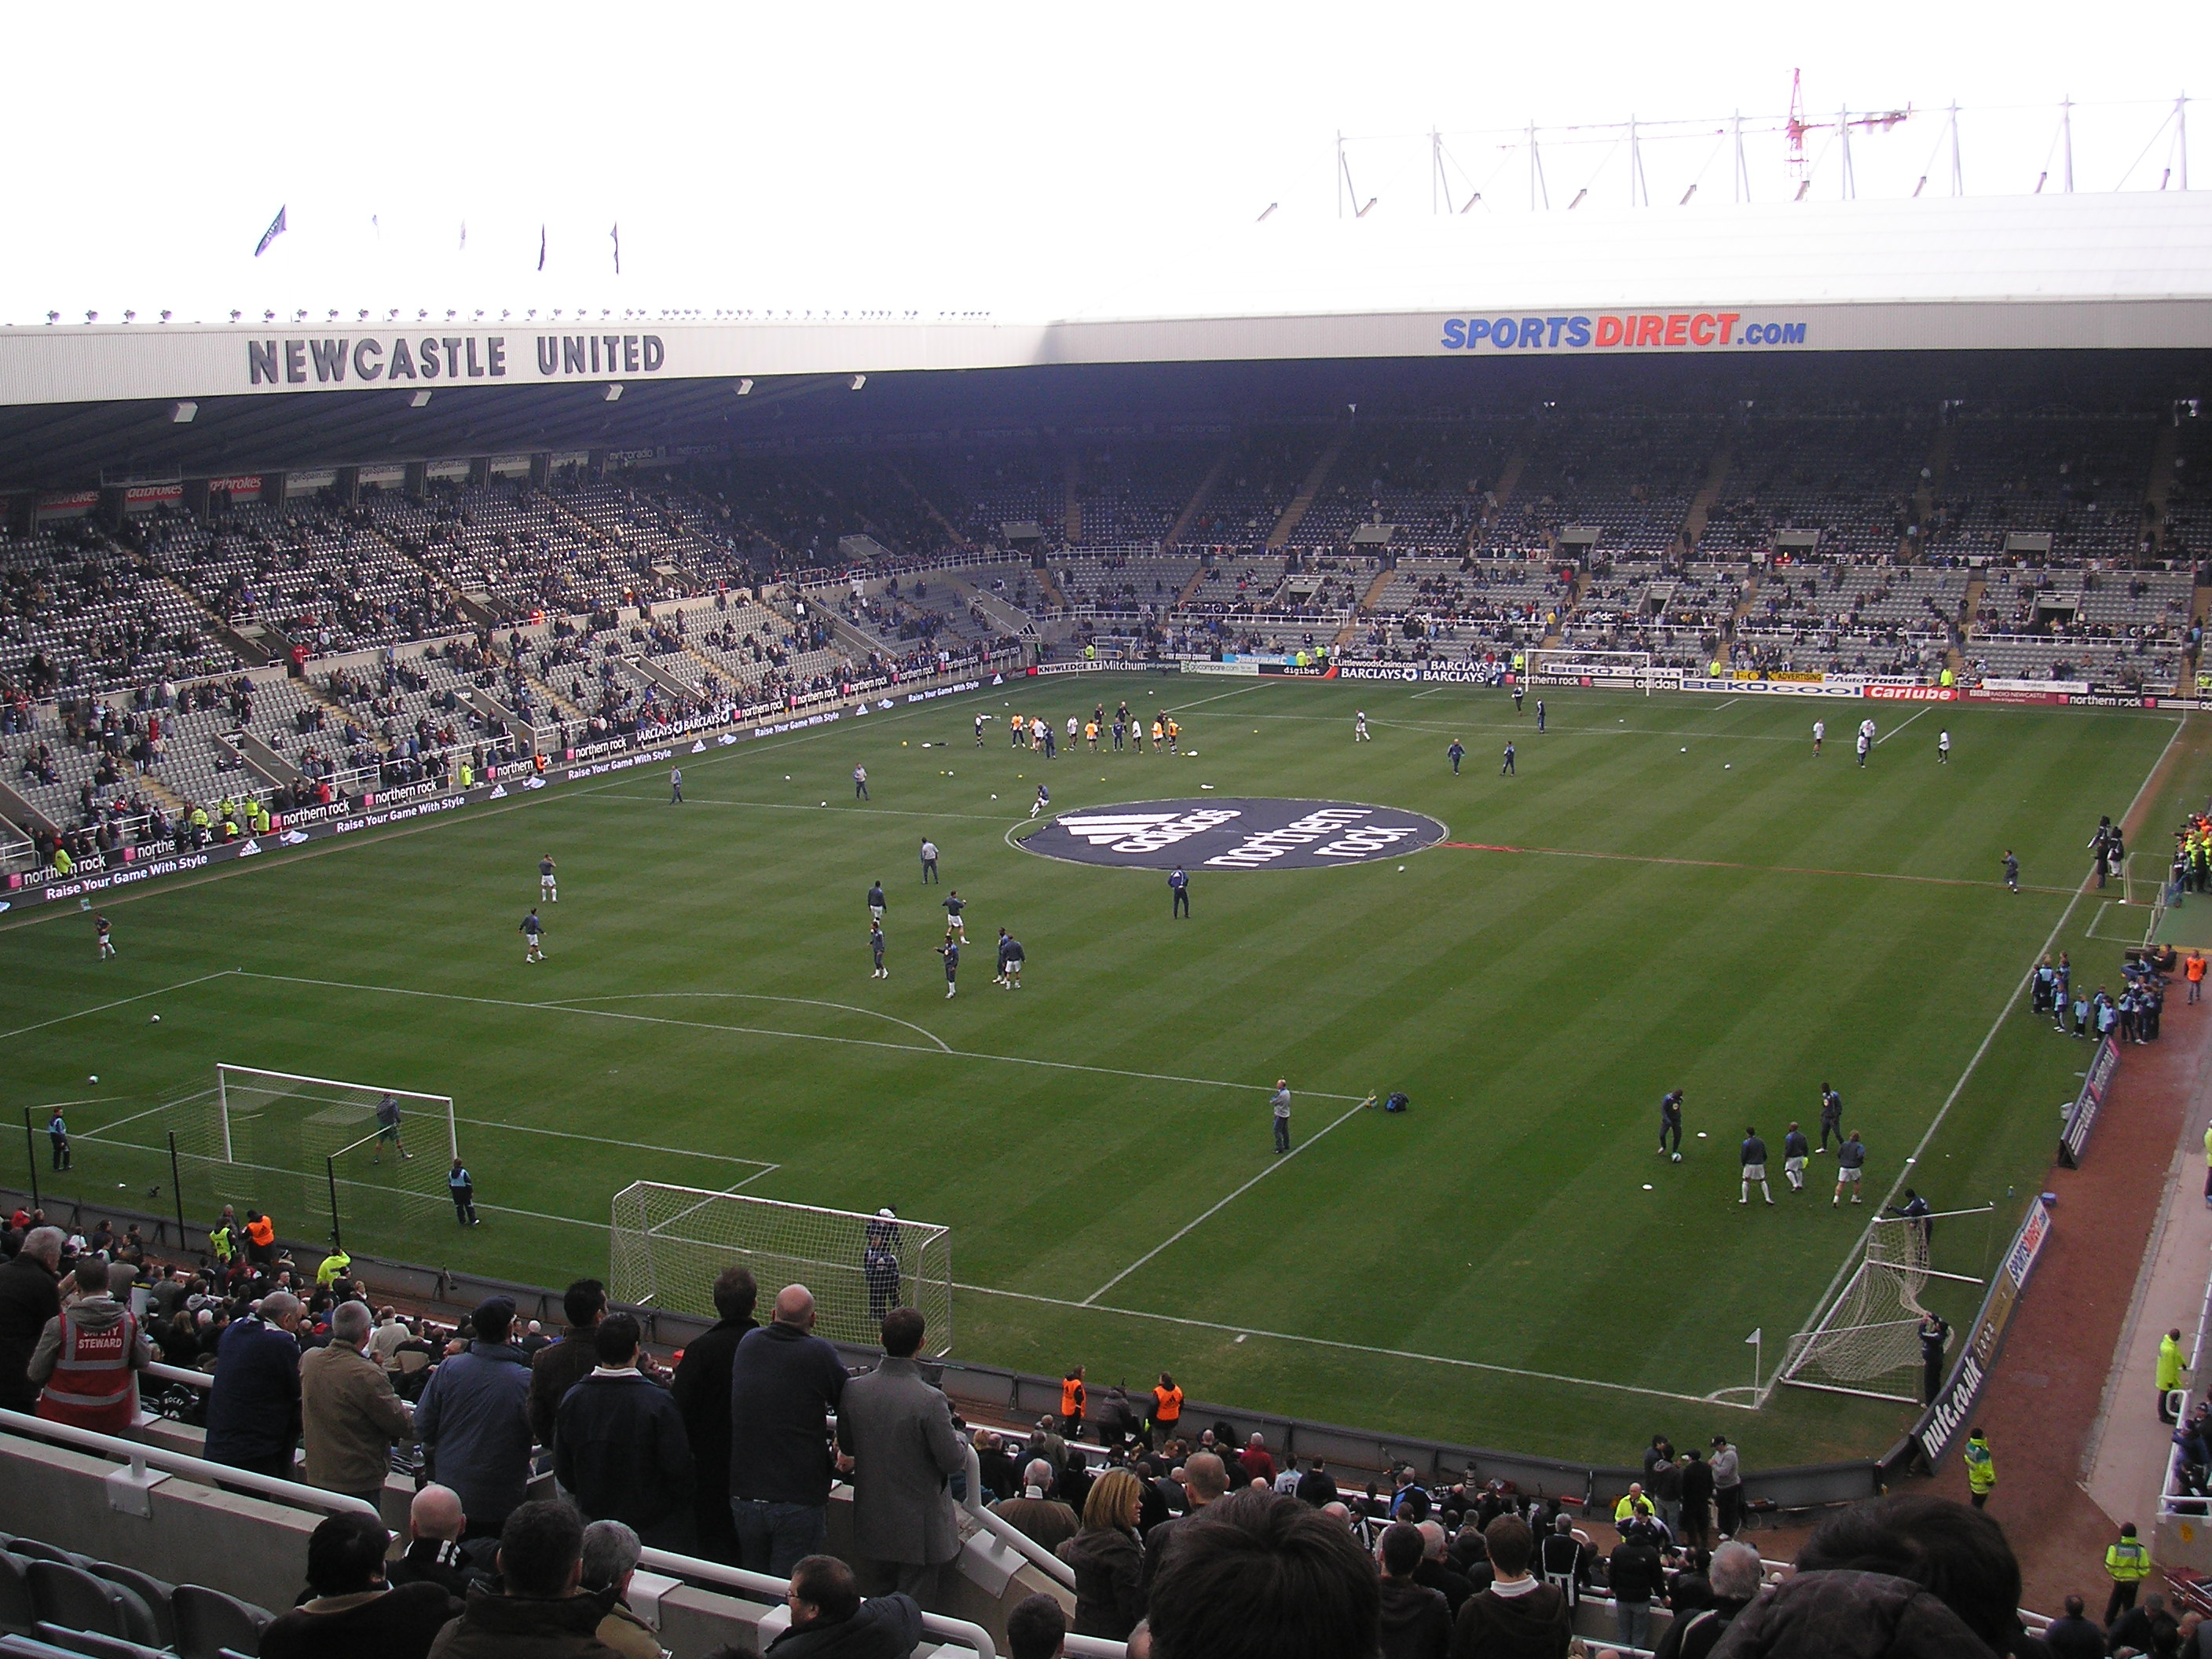 Here are the 10 best stadiums in the u.s. St James' Park - Newcastle United FC   Stadium Journey